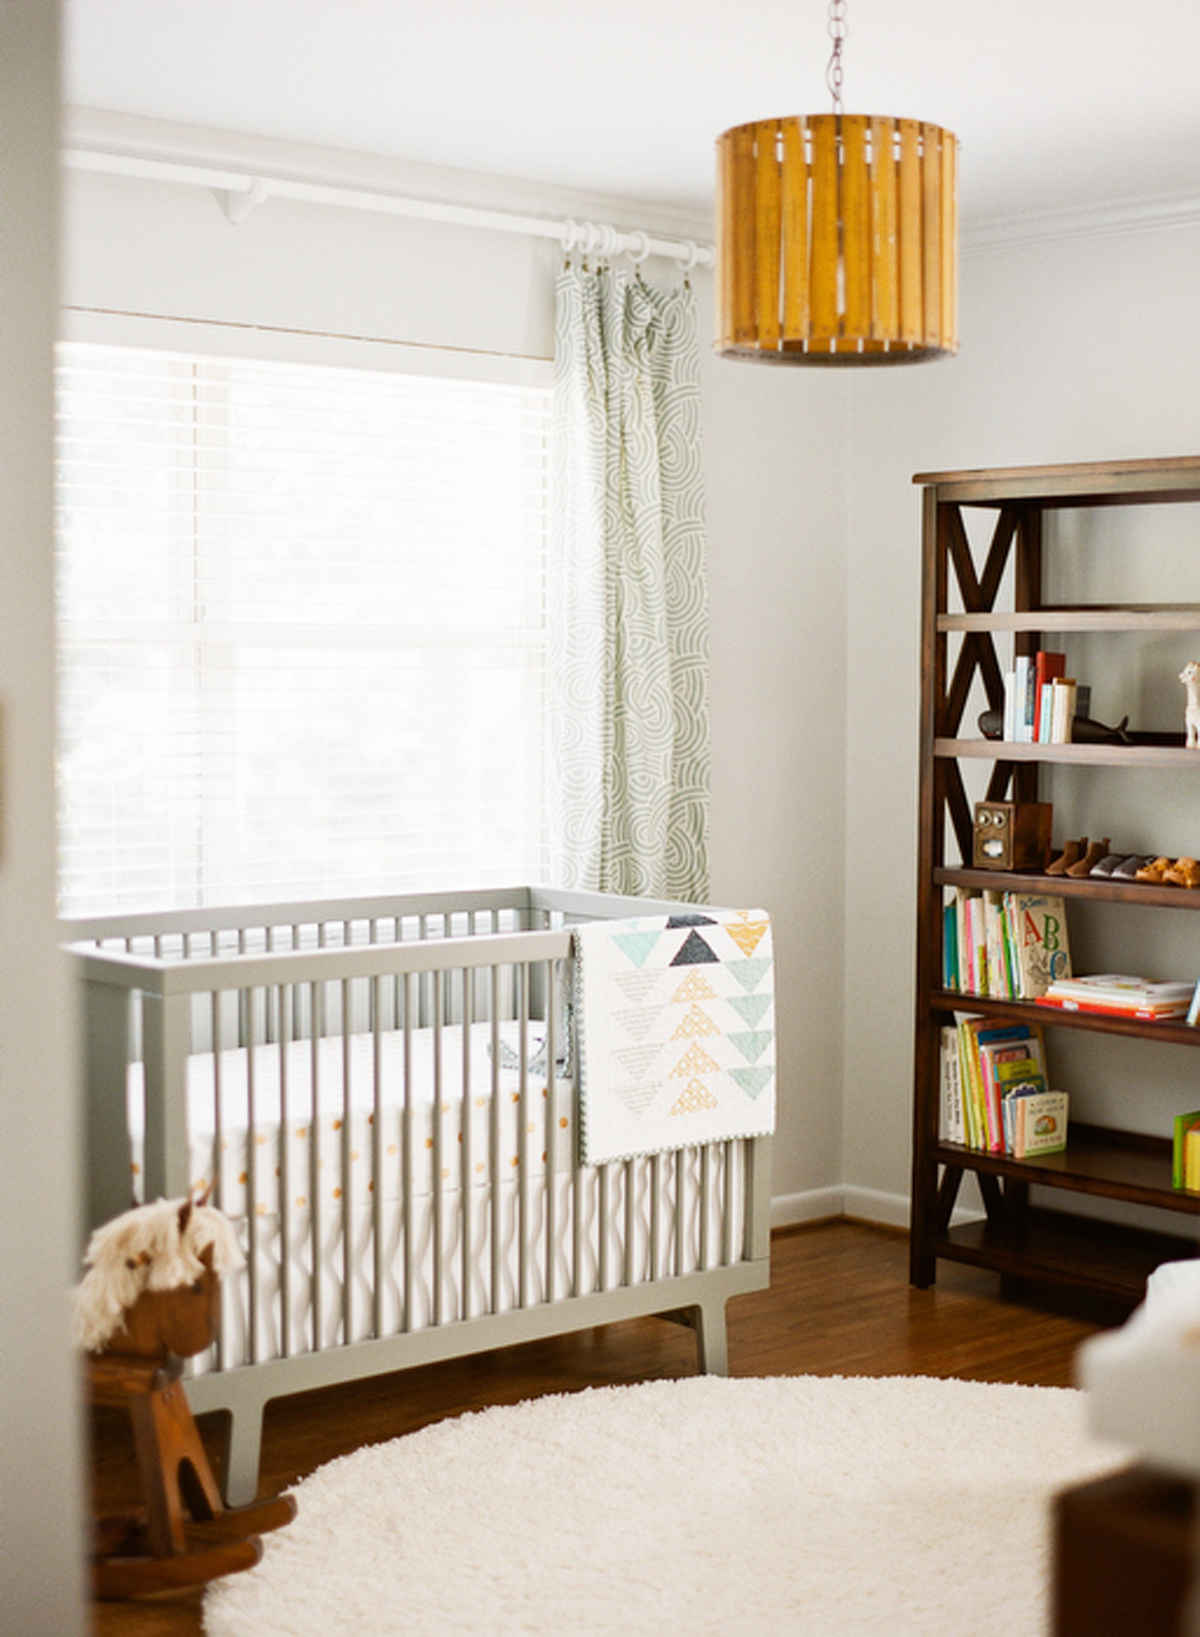 Our Little Baby Boy S Neutral Room: Nursery Inspiration & Baby Room Ideas